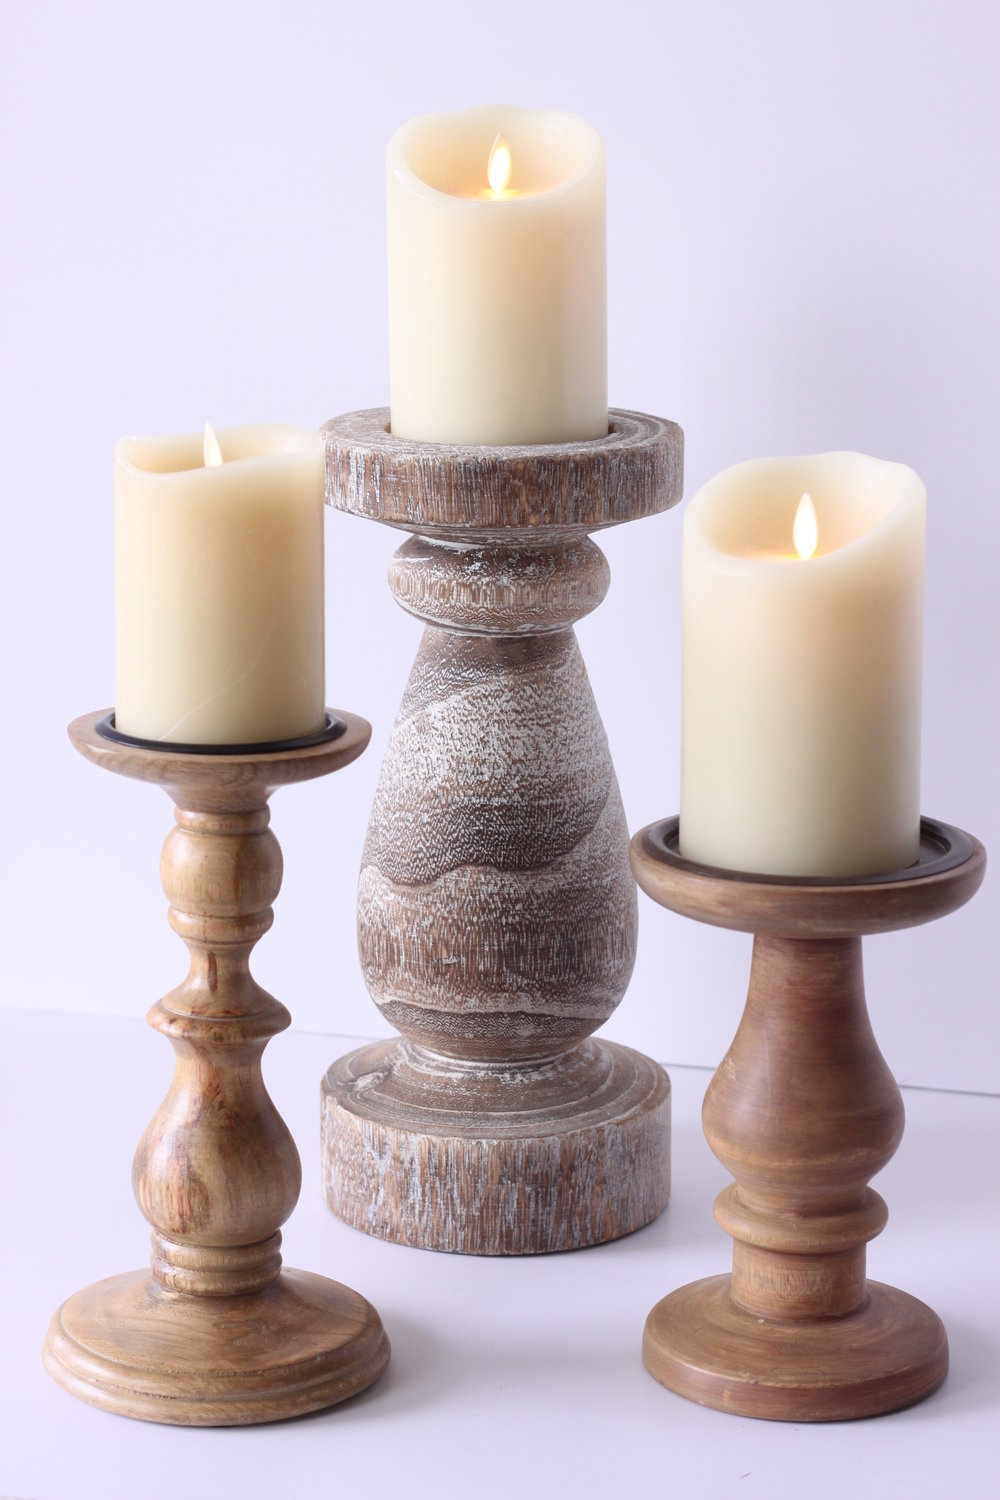 Copy of Assorted wood candle holders $5-$8/ea.